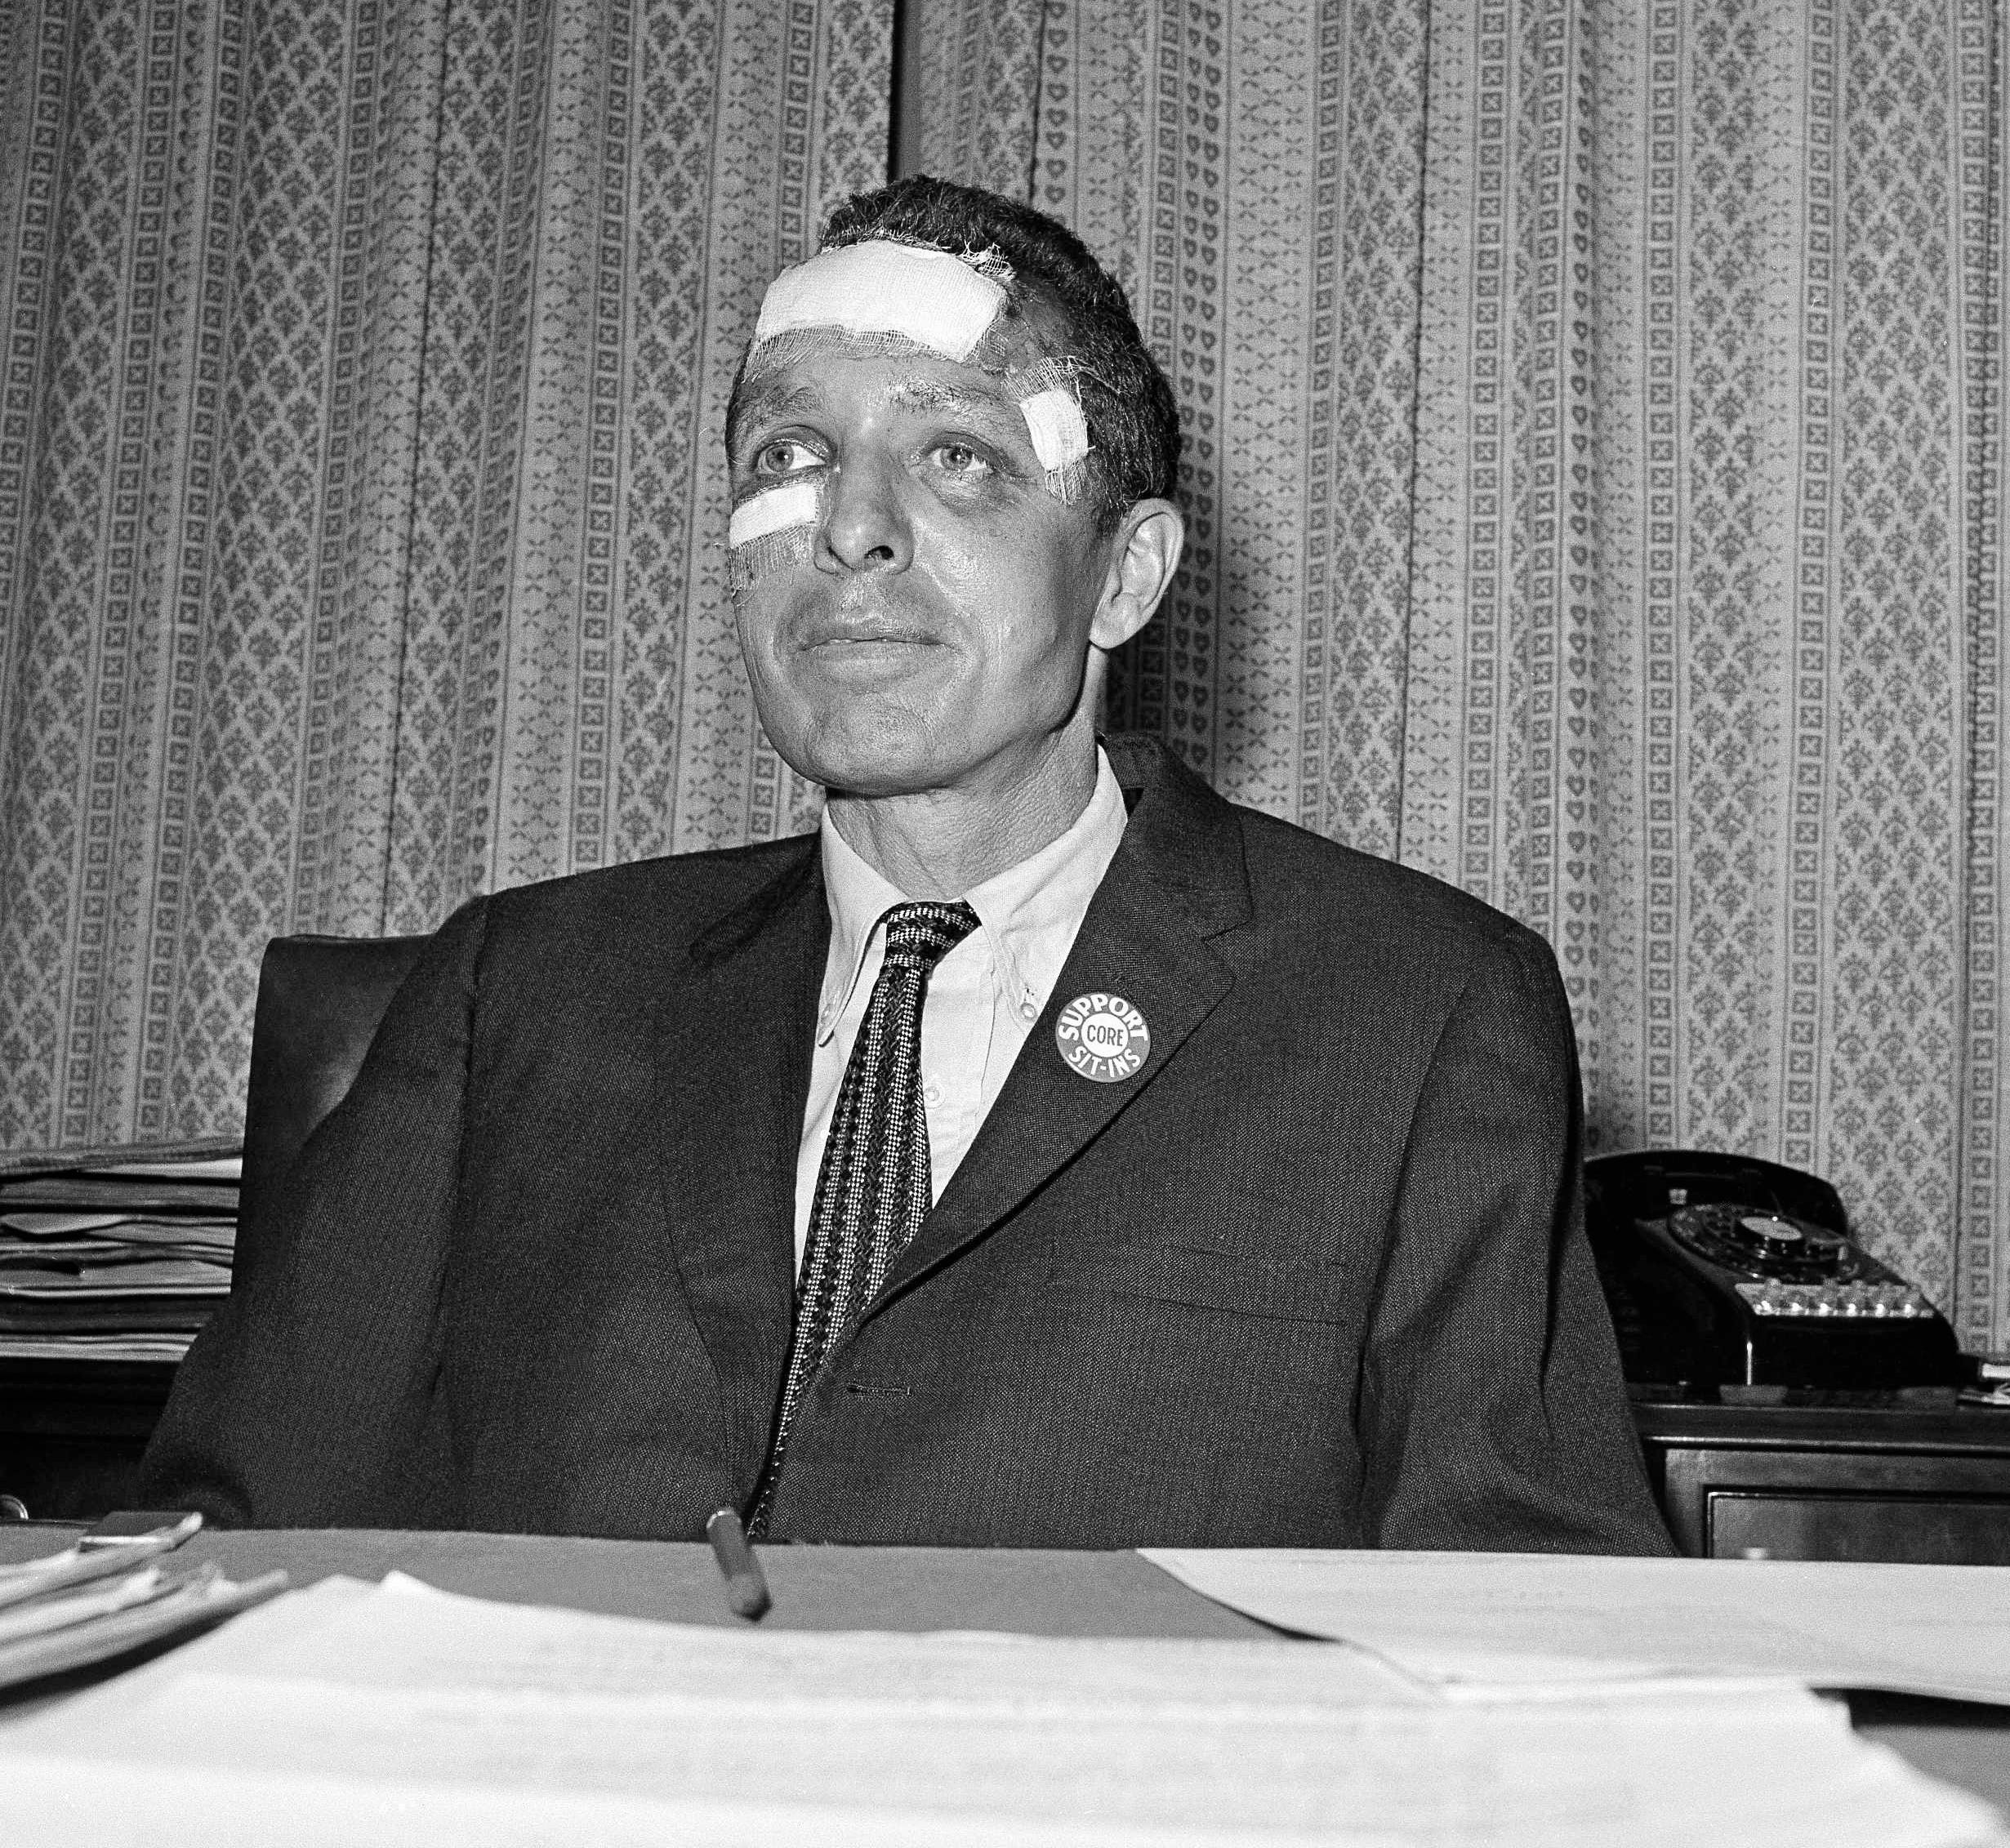 James Peck of the Congress of Racial Equality (CORE) shows the effects of a beating he received in Anniston, Ala., during a Freedom Riders bus trip as he answers questions at a press conference in New York City, May 17, 1961.